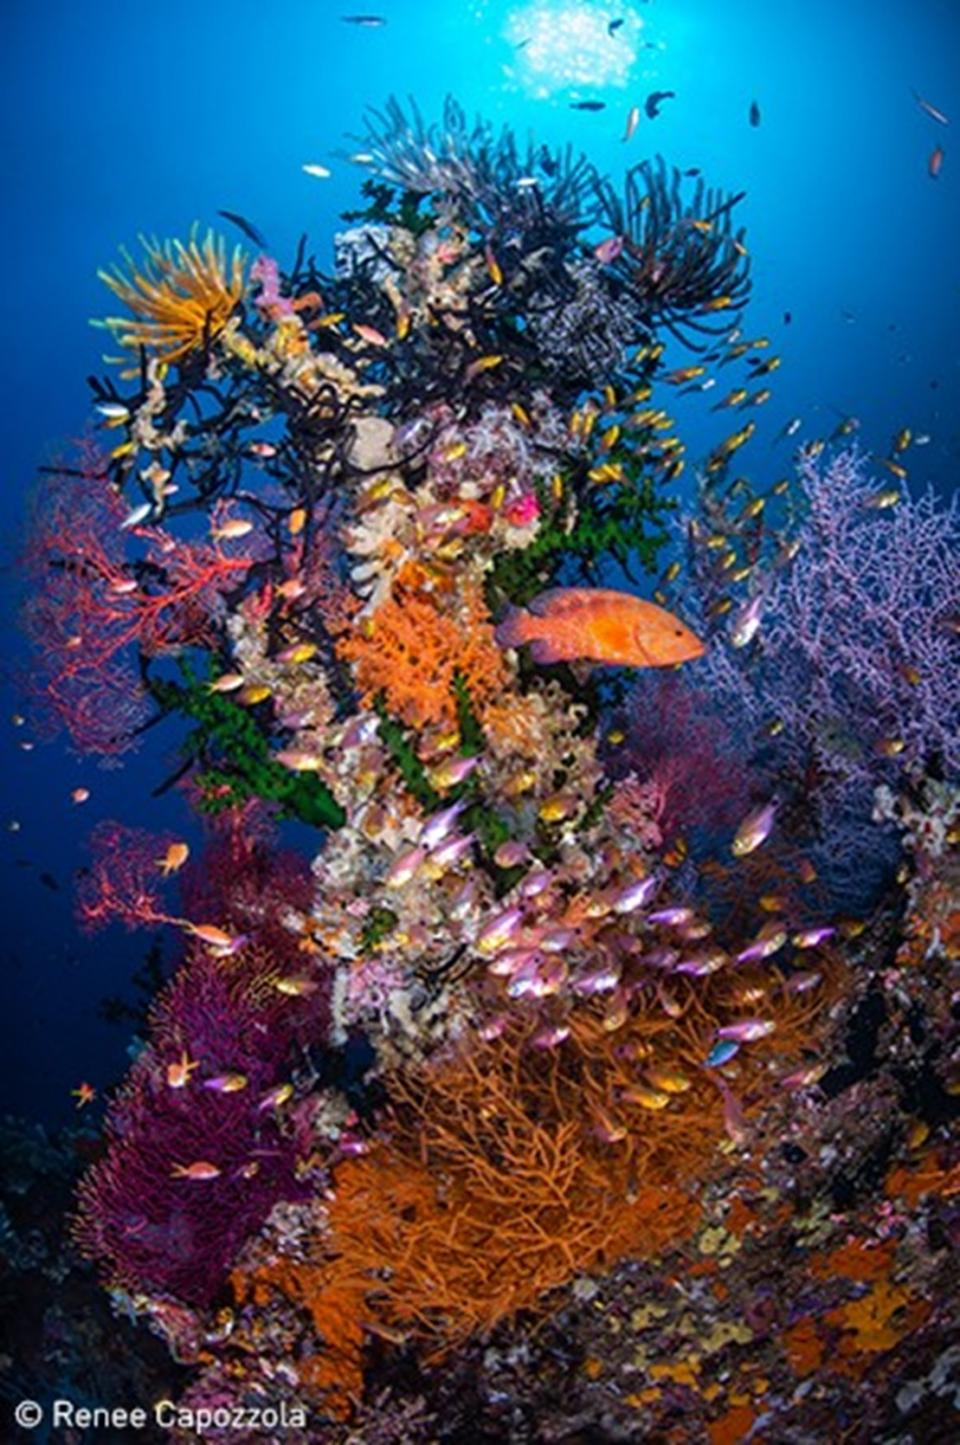 Photo: Capozzola, UN World Oceans Day Photo Competition